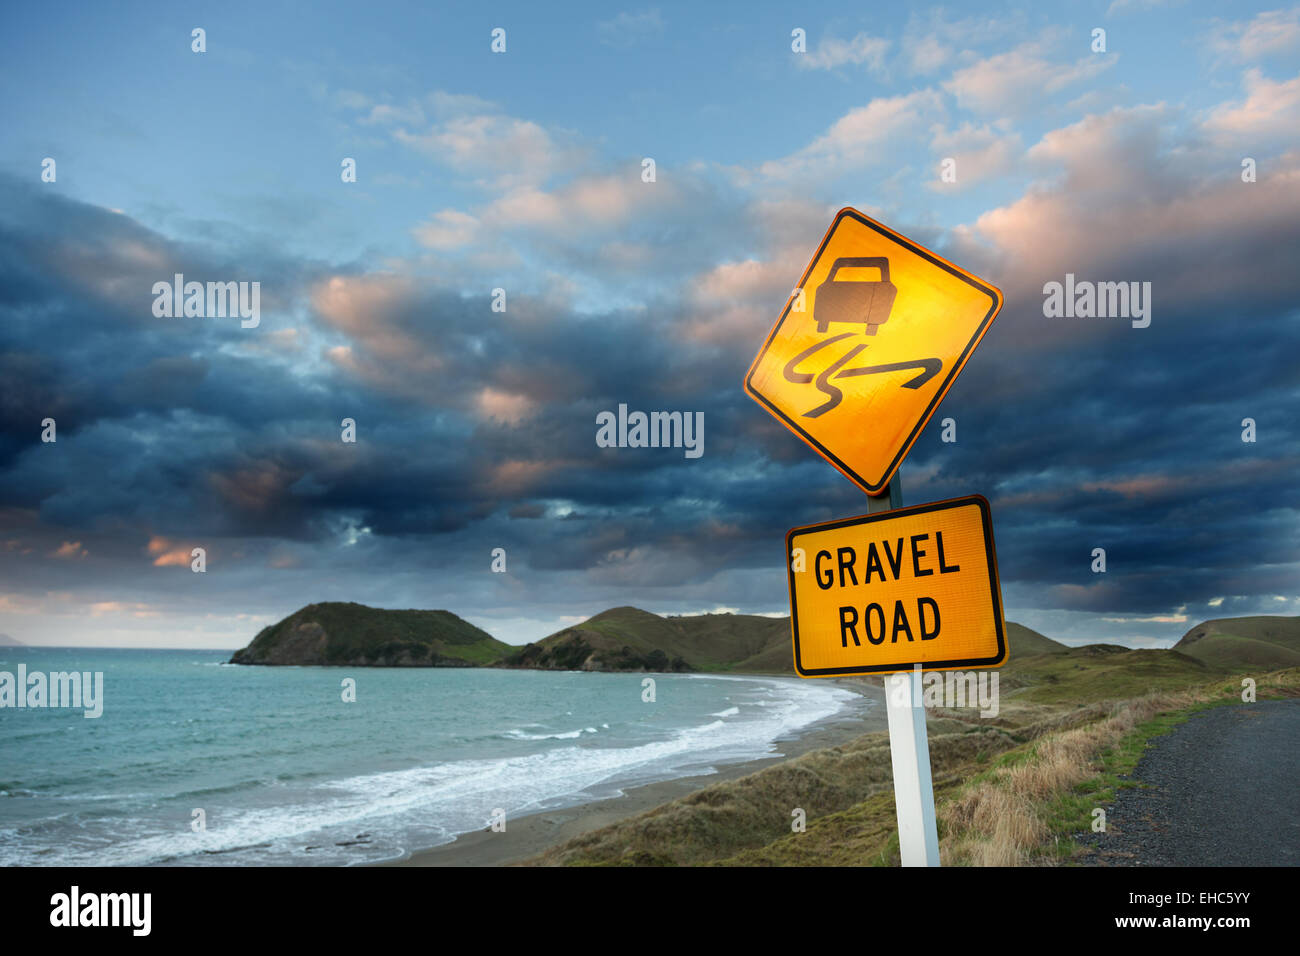 Caution (gravel road) sign on roadside by sea against cloudy sky at dusk. - Stock Image